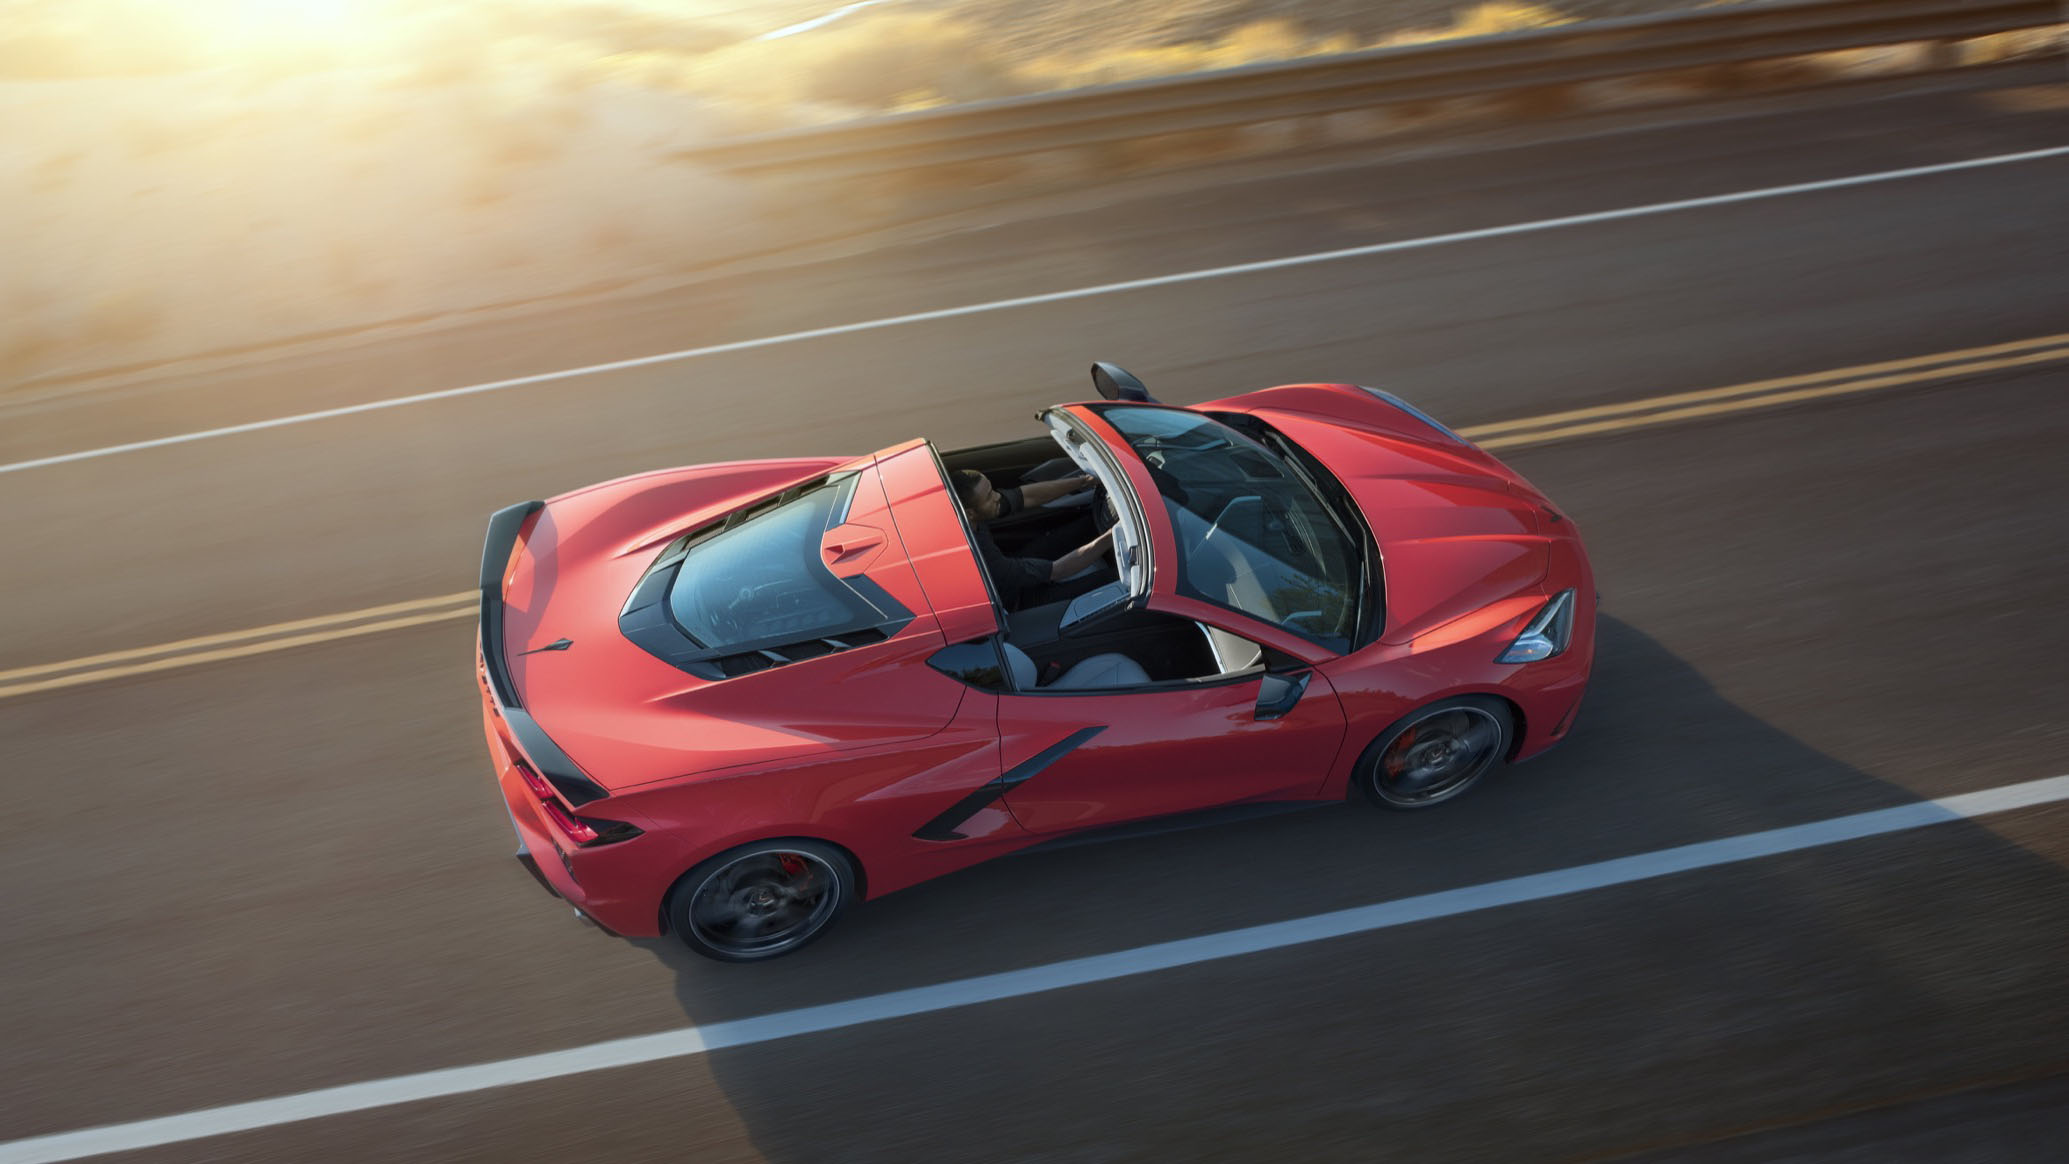 2020 Chevy Corvette C8 gets adjustable brakes, here's how ...